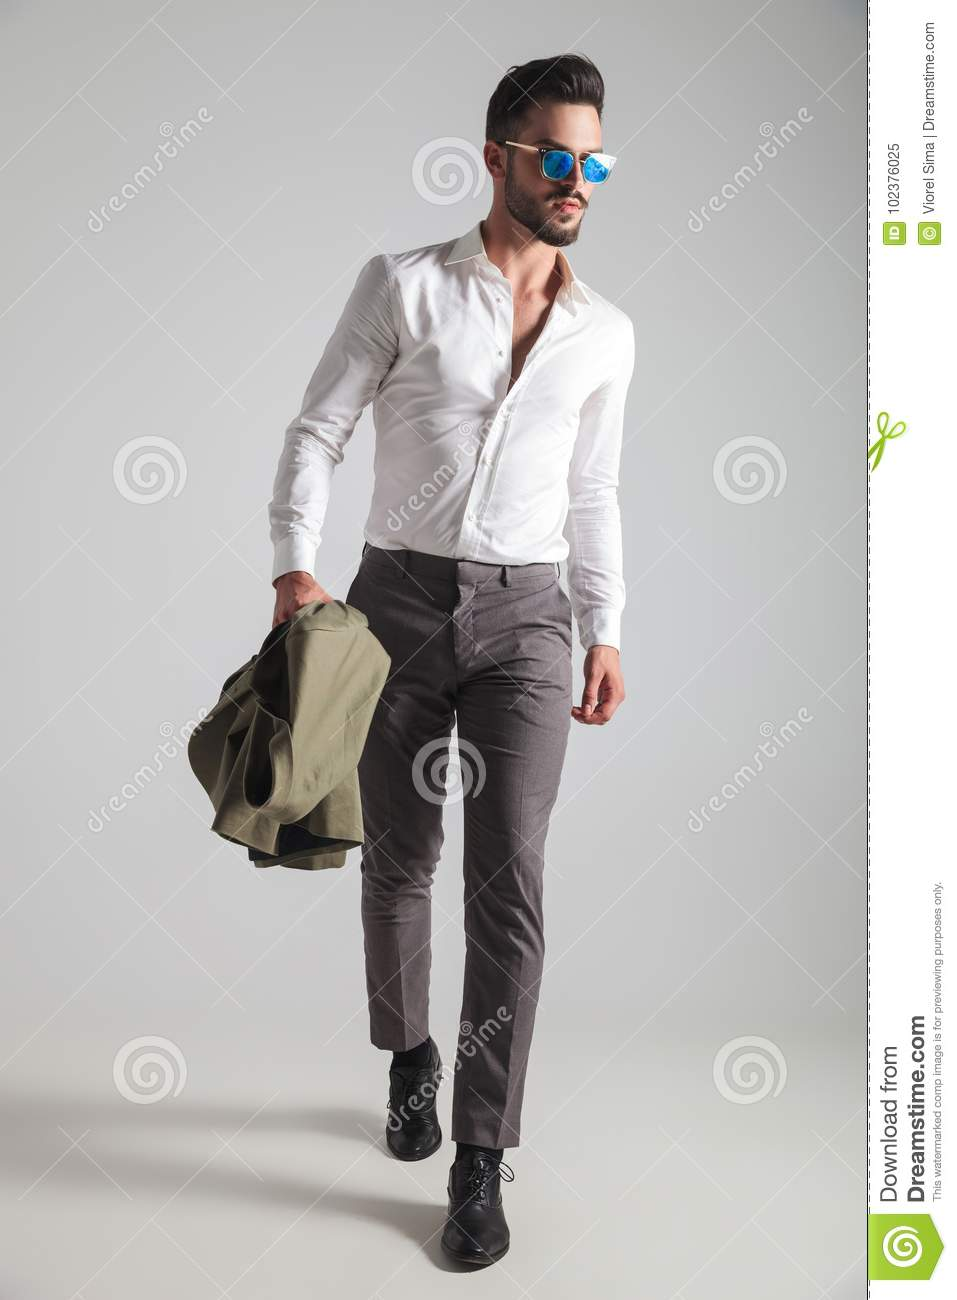 Young man in sunglasses looks to side while walking